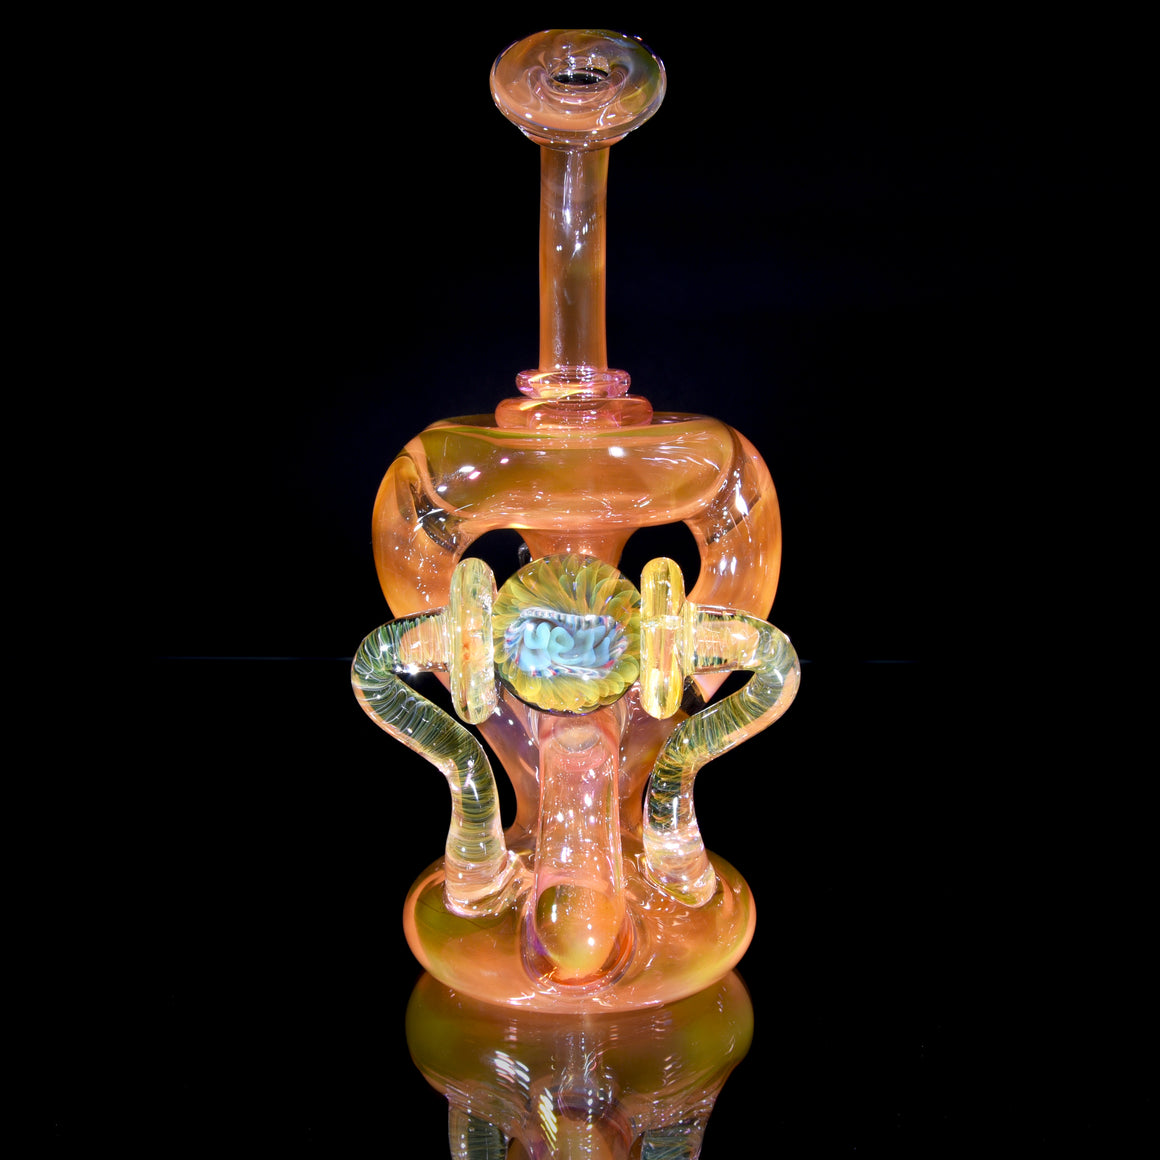 Fully-fumed Double Uptake Klein Recycler w/ Spinning Marble - 14mm Female